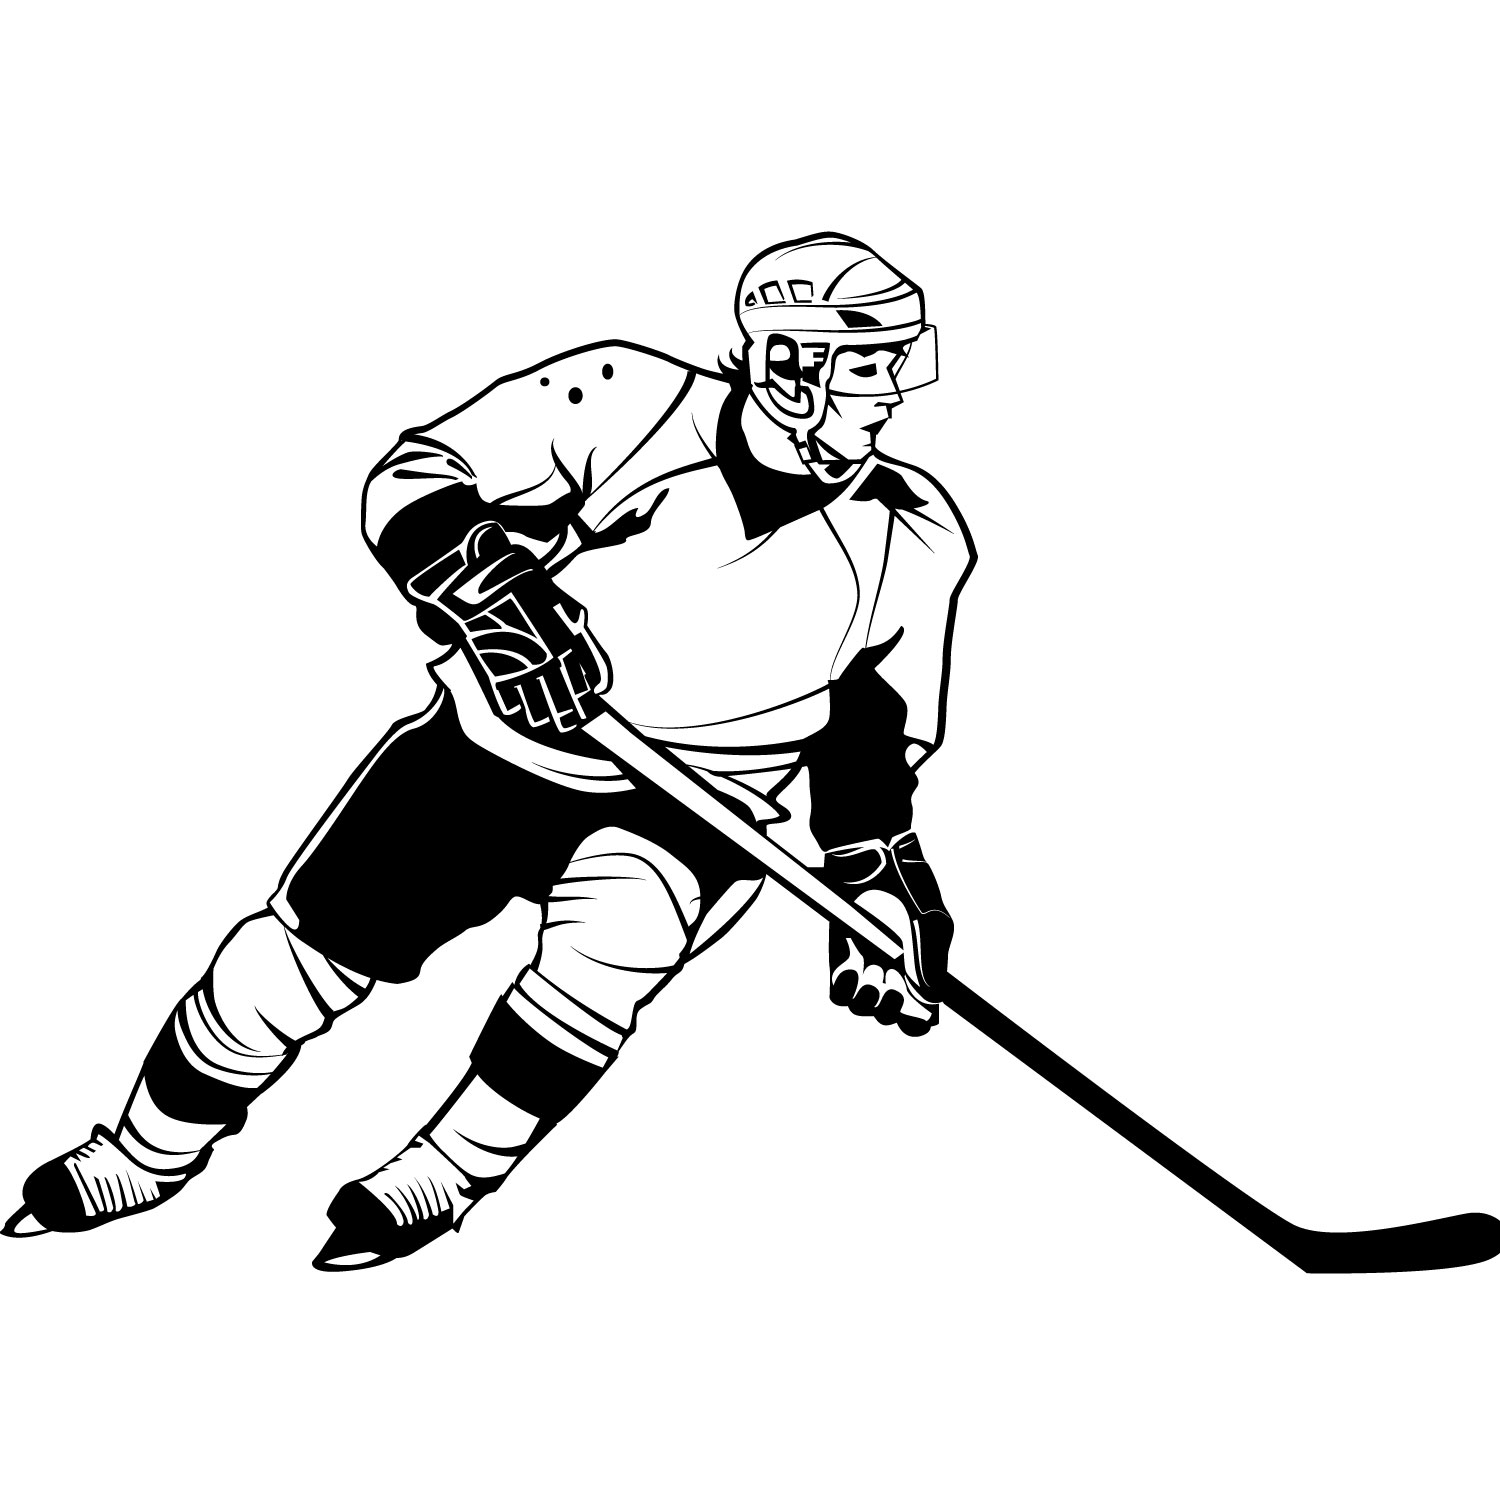 Free Hockey Image, Download Free Clip Art, Free Clip Art on.